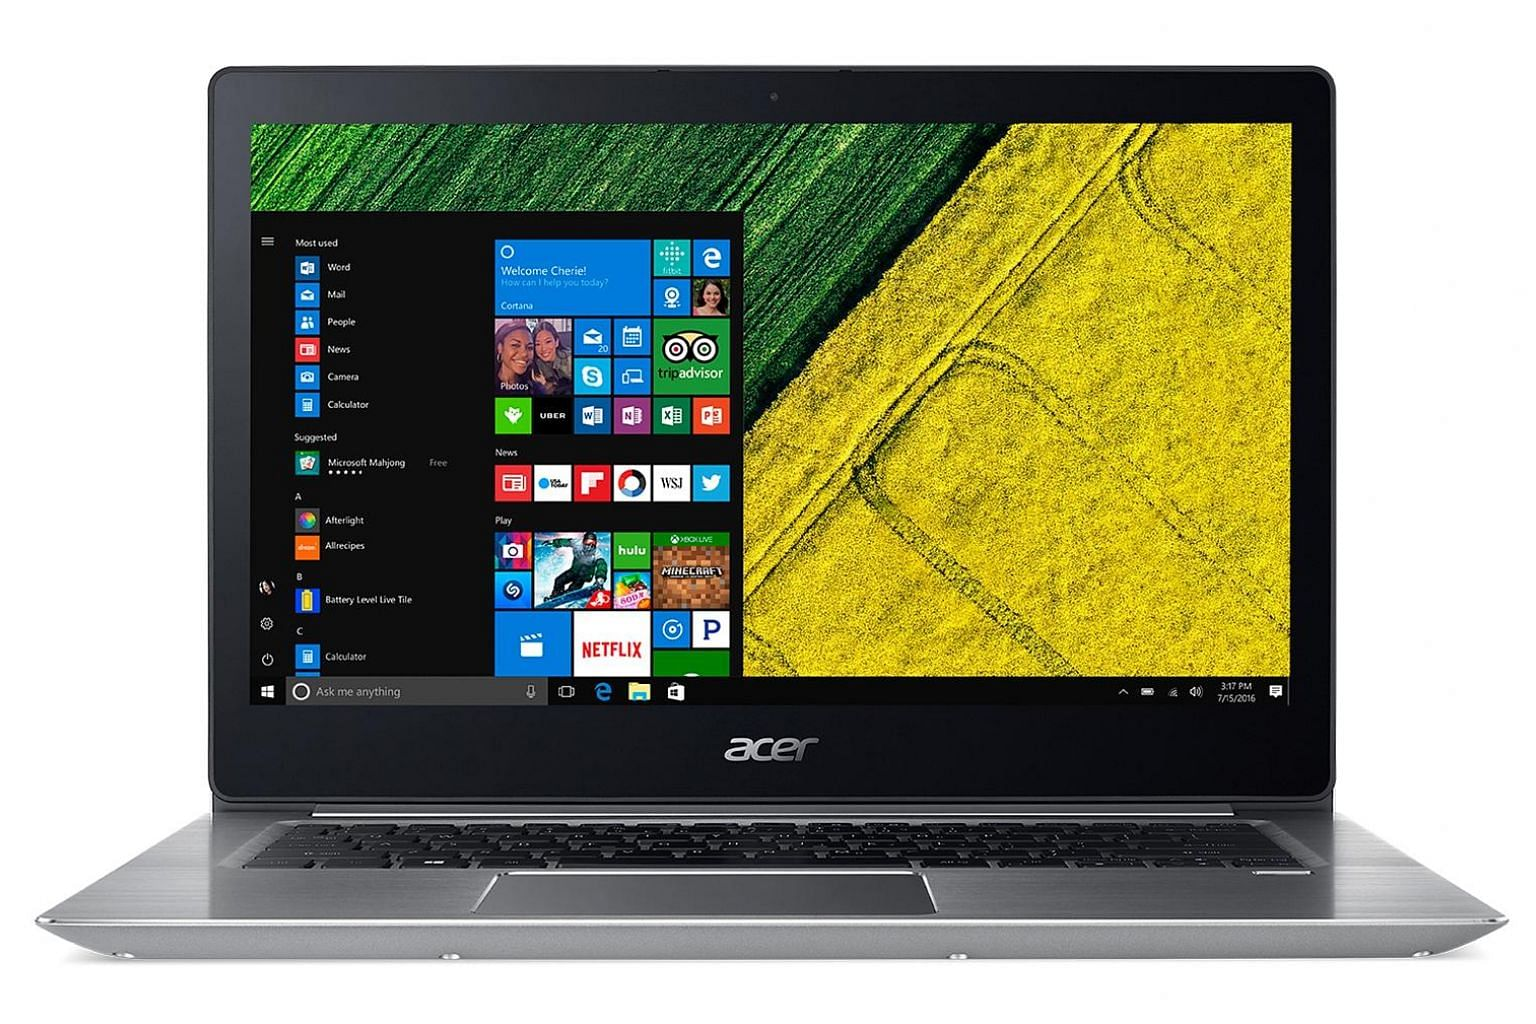 The Acer Swift 3 display is protected by Corning Gorilla Glass and is glossy and reflective. Viewing angles, are good, thanks to the use of an in-plane switching panel.